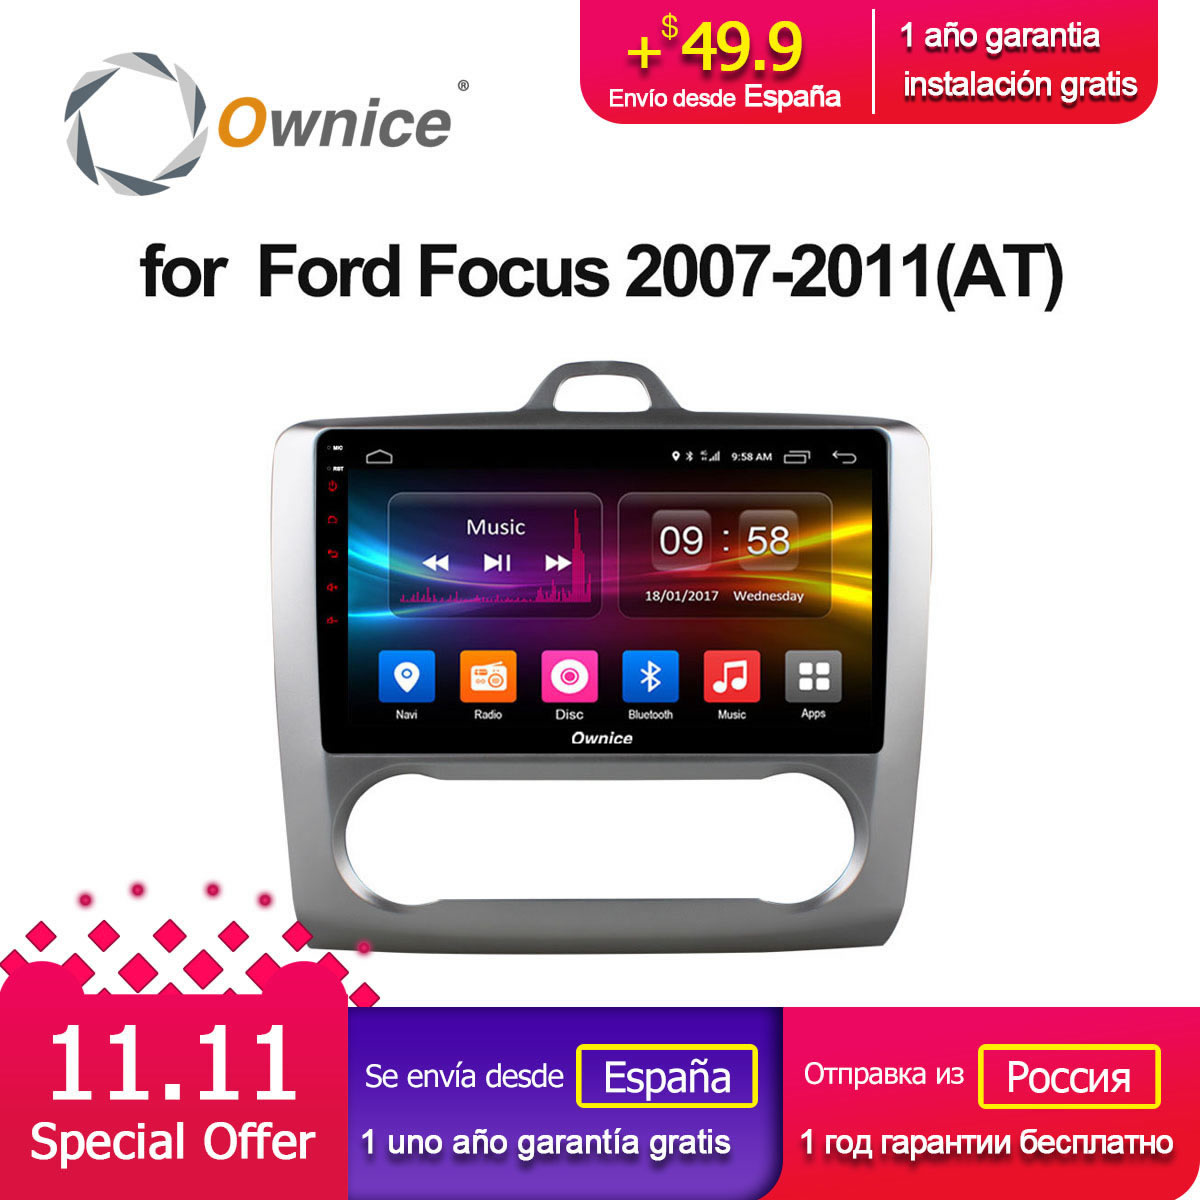 Ownice C500+ G10 Octa Core Android 8.1 Car Radio DVD player GPS Navi 2G/32G Support 4G For Ford Focus 2007 2008 2009 2010 2011 ownice c500 octa core android 6 0 car dvd gps for mazda 6 ruiyi ultra 2008 2009 2010 2011 2012 wifi 4g radio 2gb ram bt 32g rom